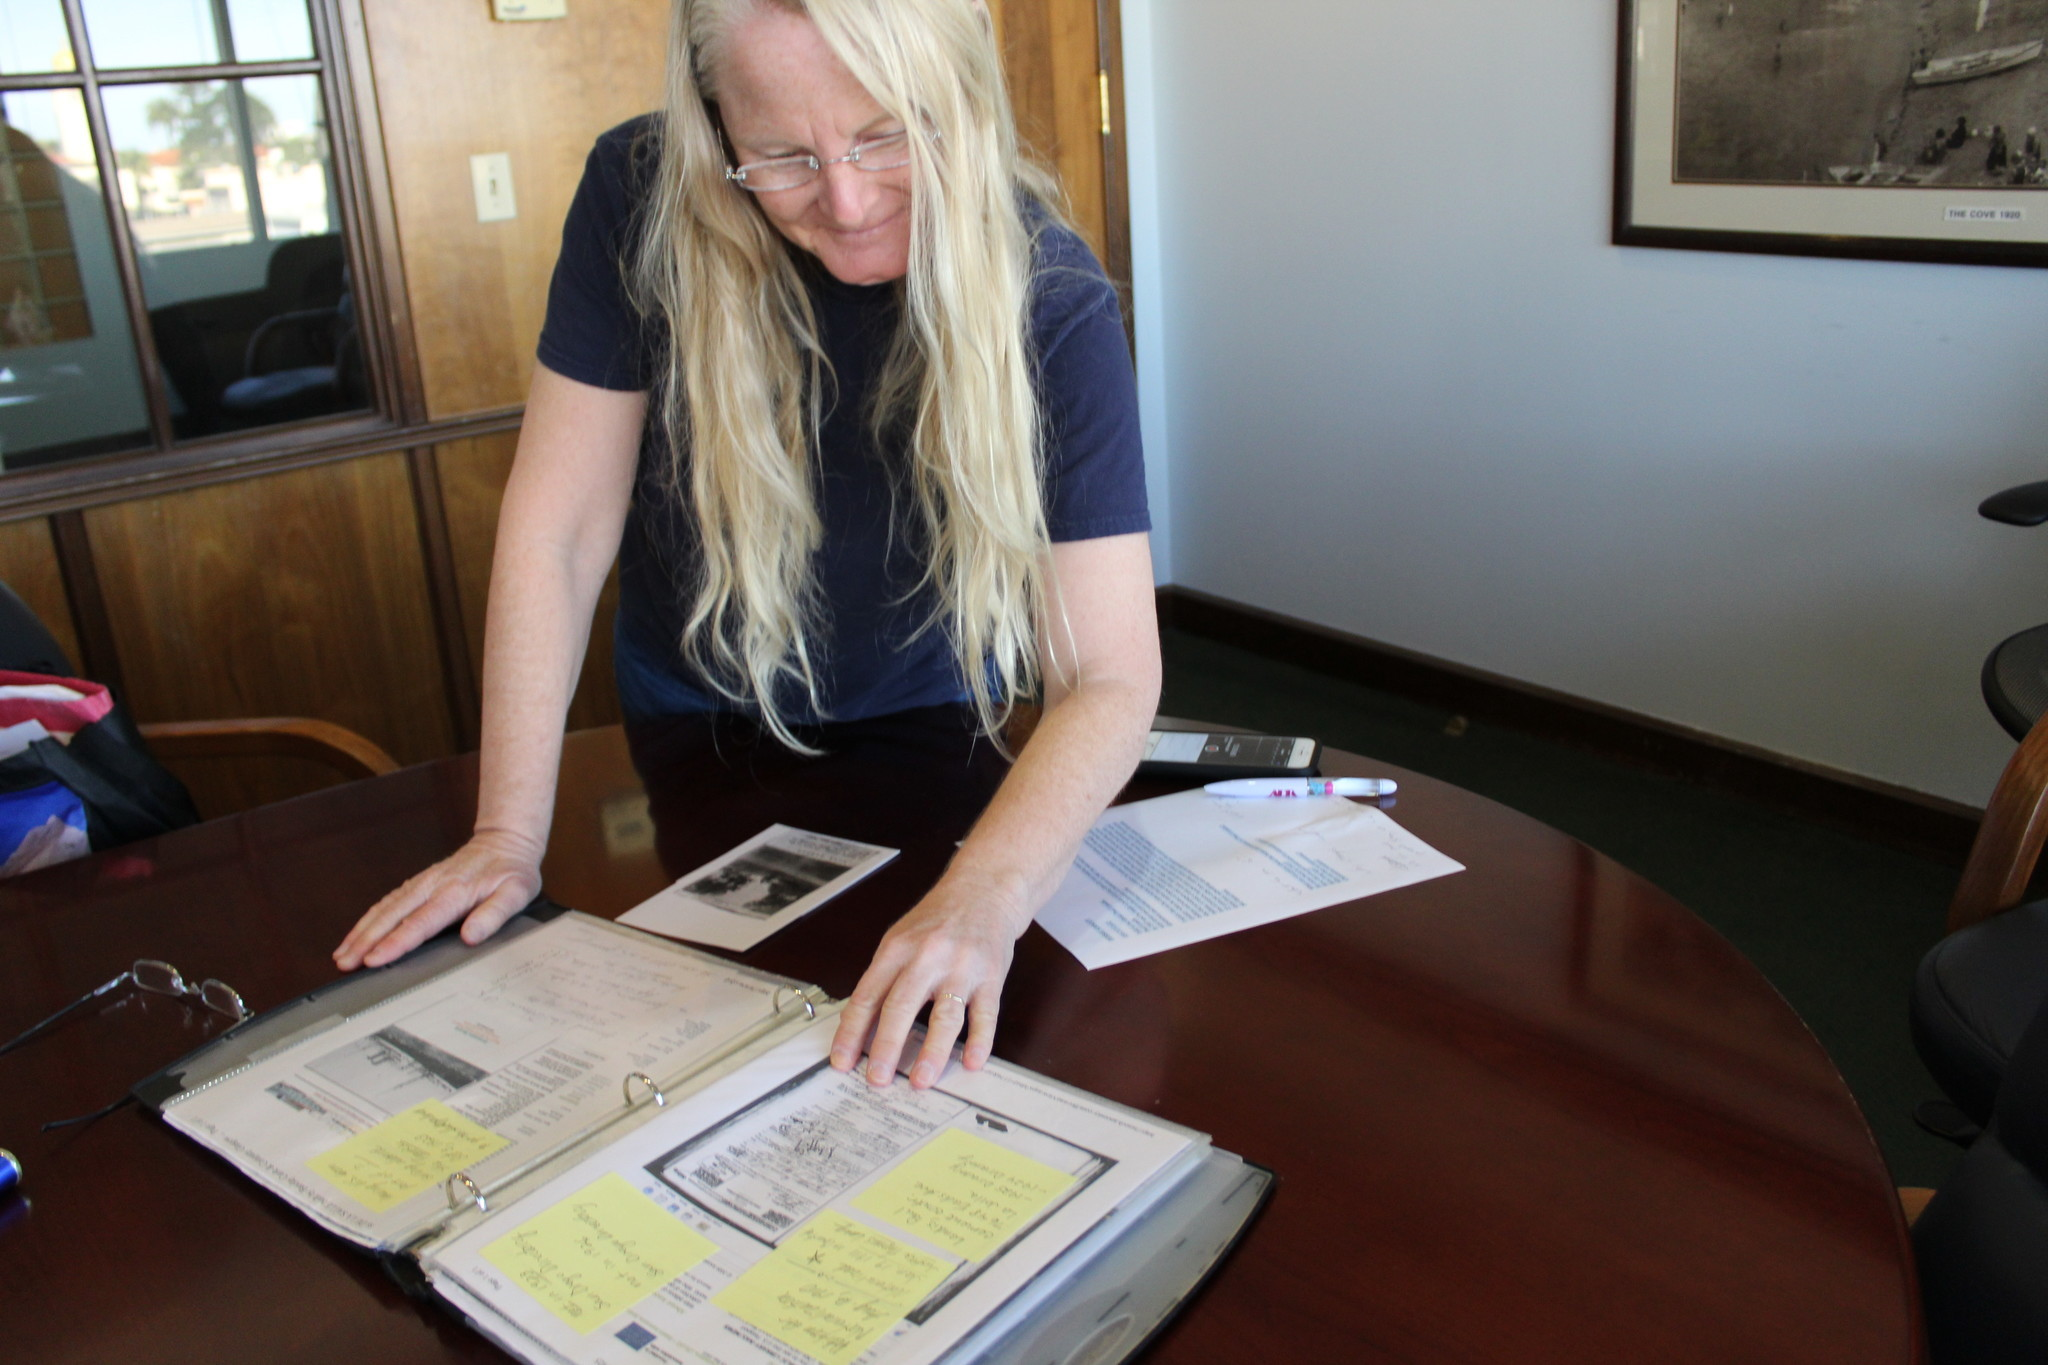 Clairemont resident and sidewalk stamp enthusiast Debbie Abbott looks through her scrapbook of historical information she collects about the cement contractors.